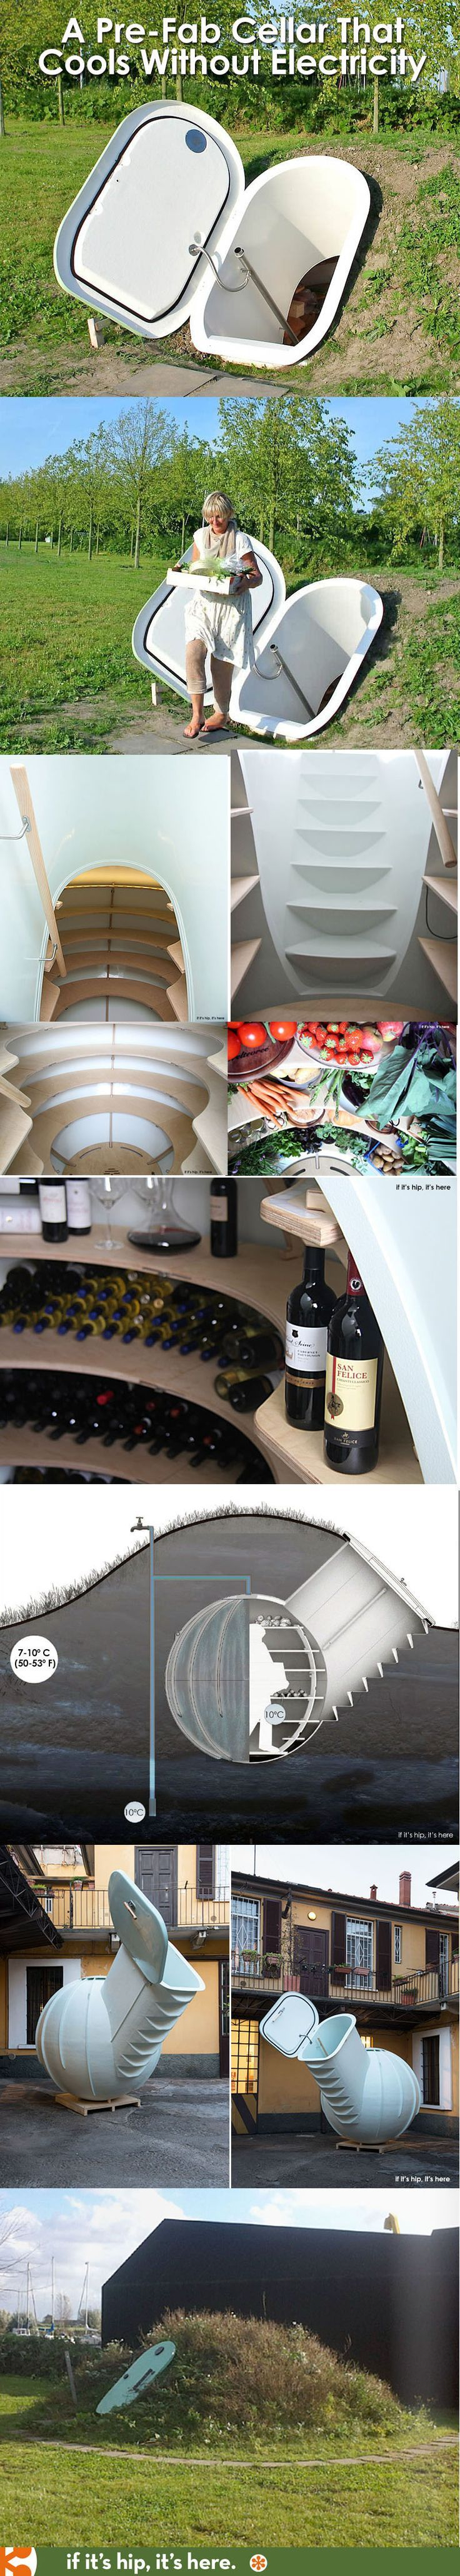 The Groundfridge will store as much as 20 refrigerators underground without using electricity.